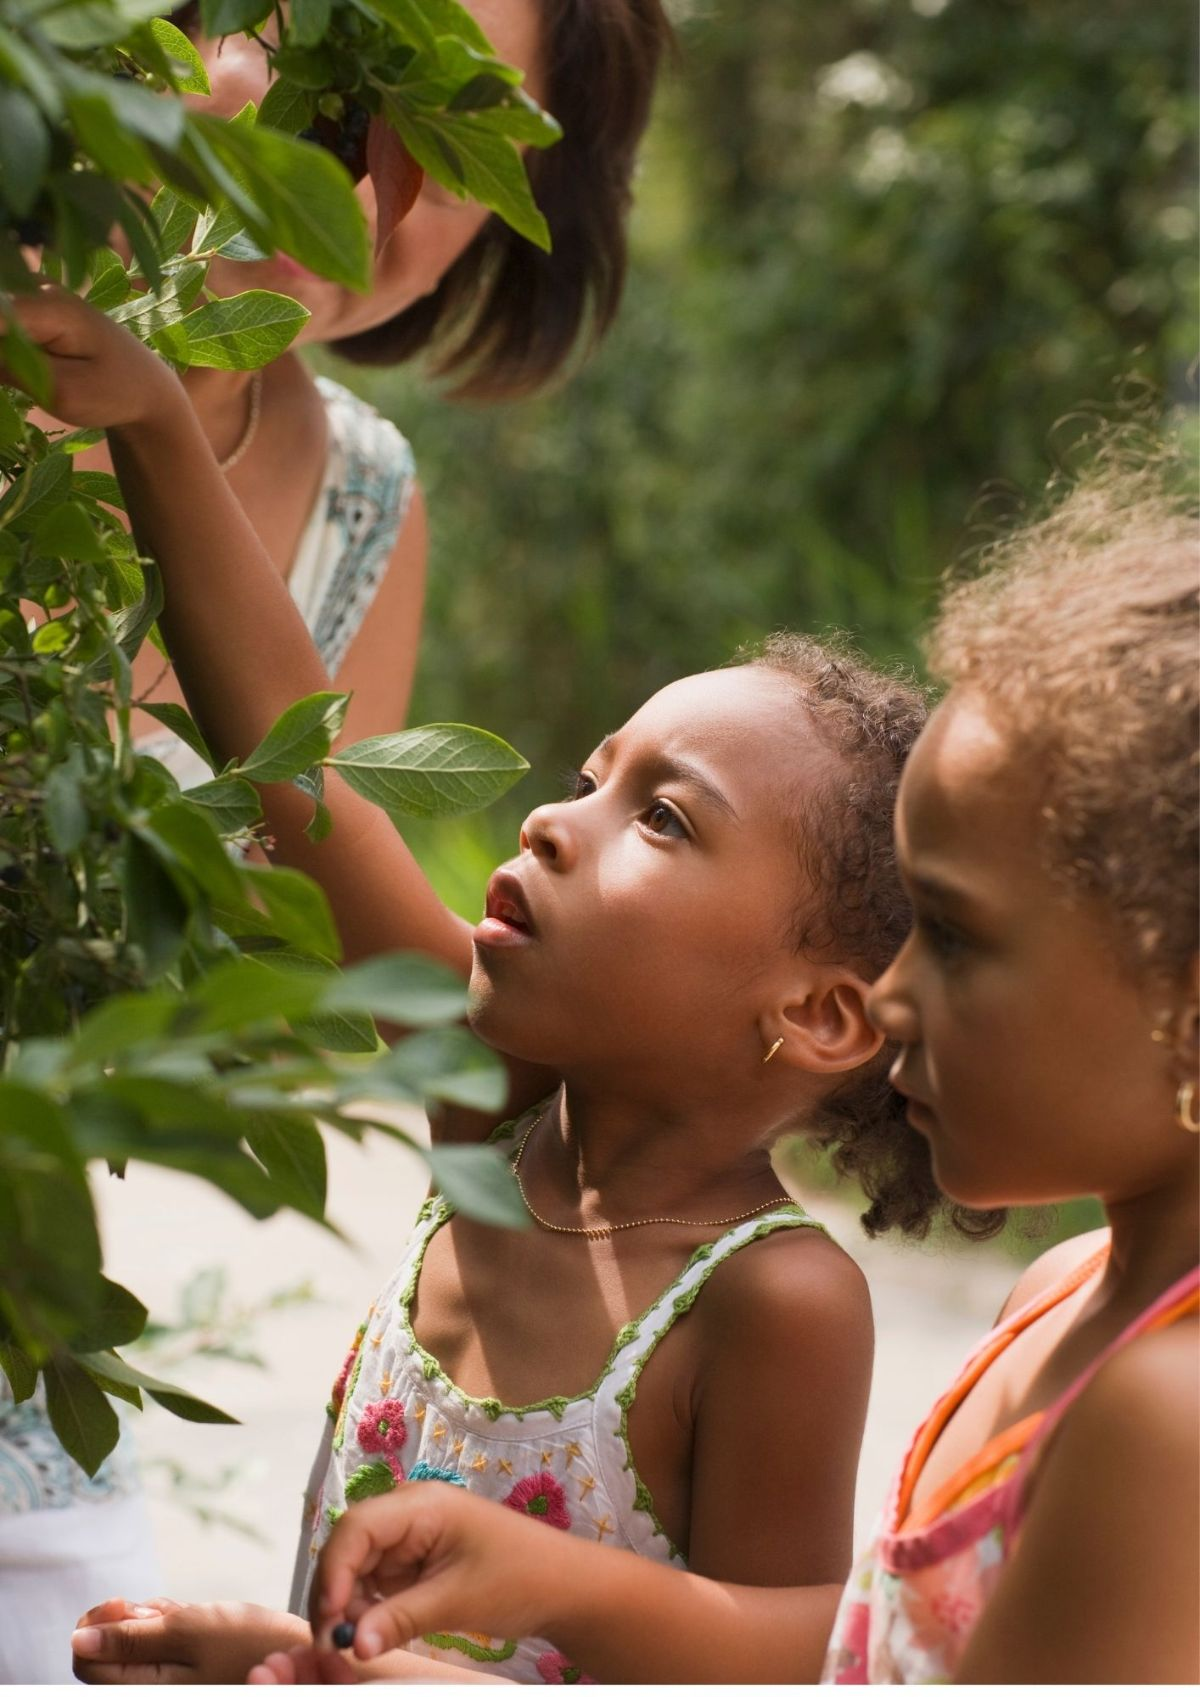 2 girls and a women pick berries from a tree